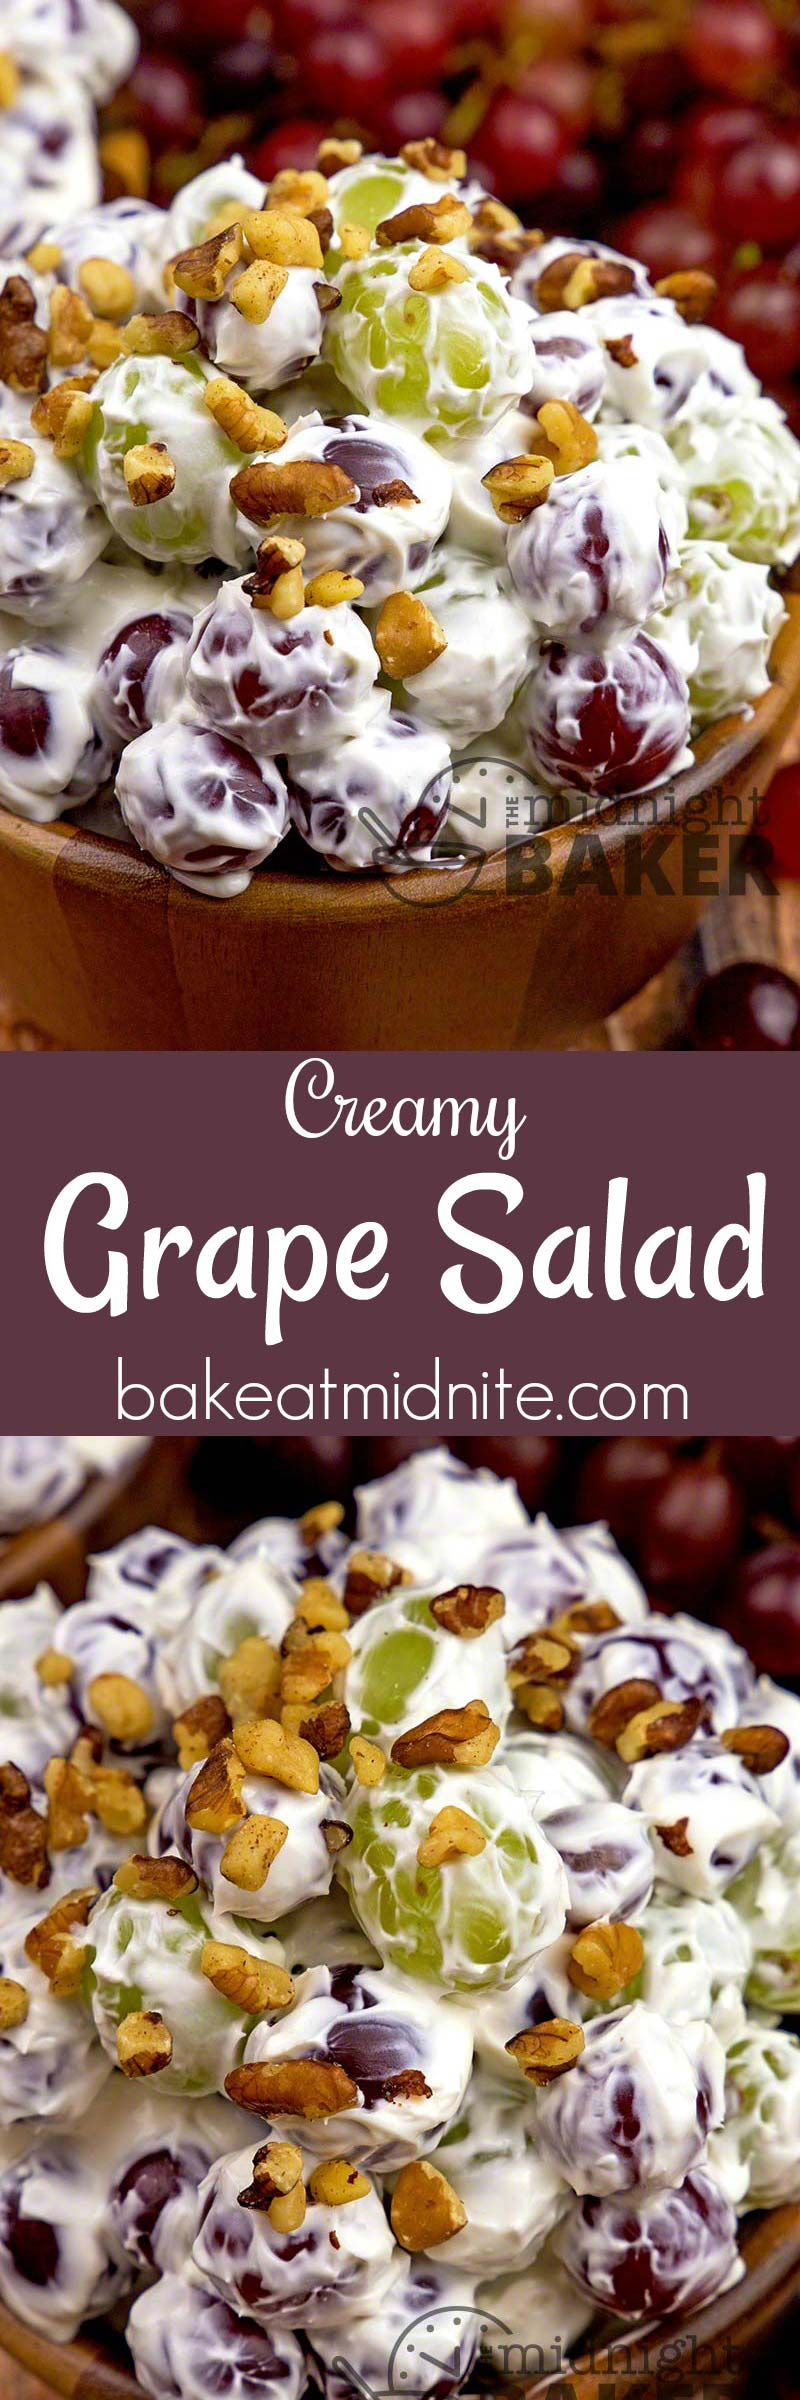 Here's a salad everyone can get into! Sweet juicy grapes in a creamy cheesecake-like dressing. Perfect for snacking.